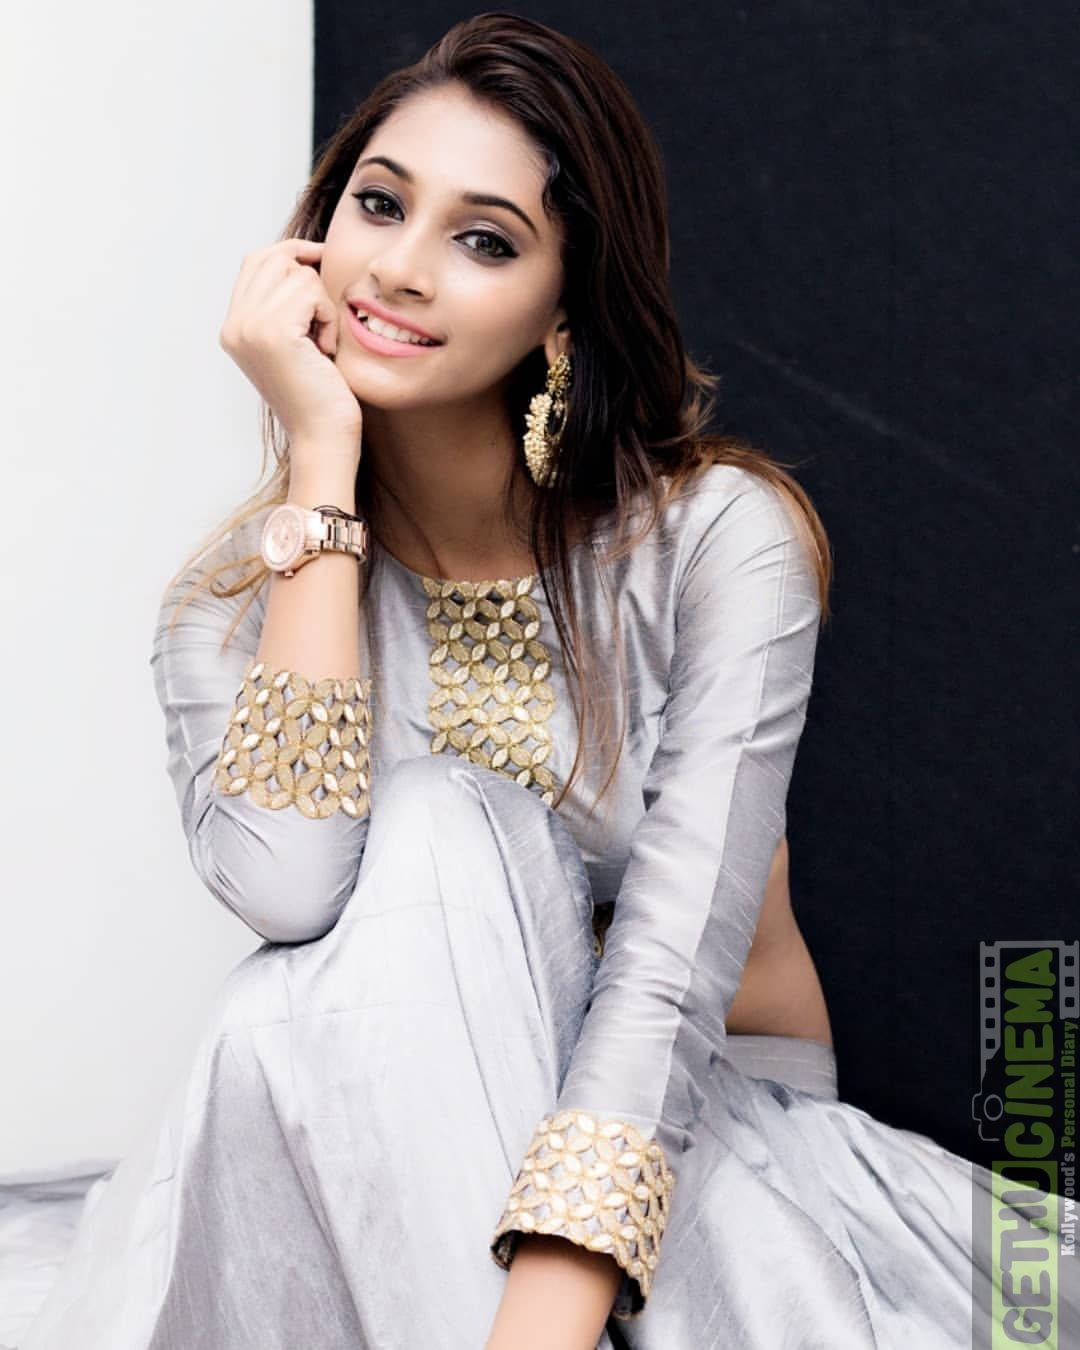 Anukreethy Vas (Miss India World 2018)- Biography, Family, Education, Lifestyle, Facts And More...